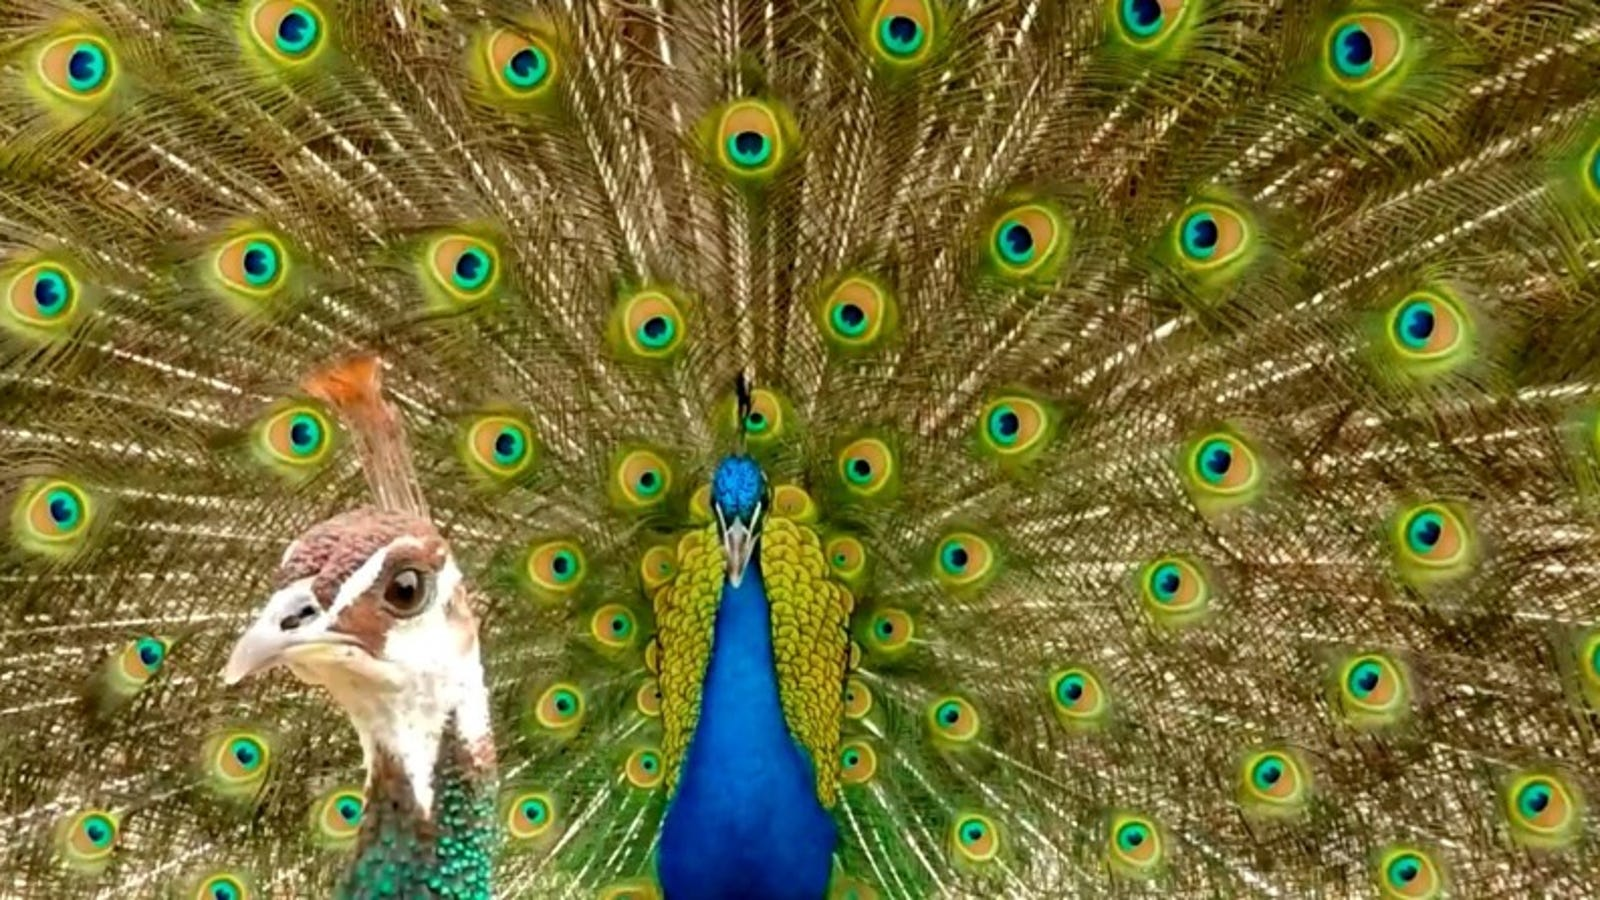 The Physics of Peacock Tail Feathers Is Even More Dazzling Than We Realized